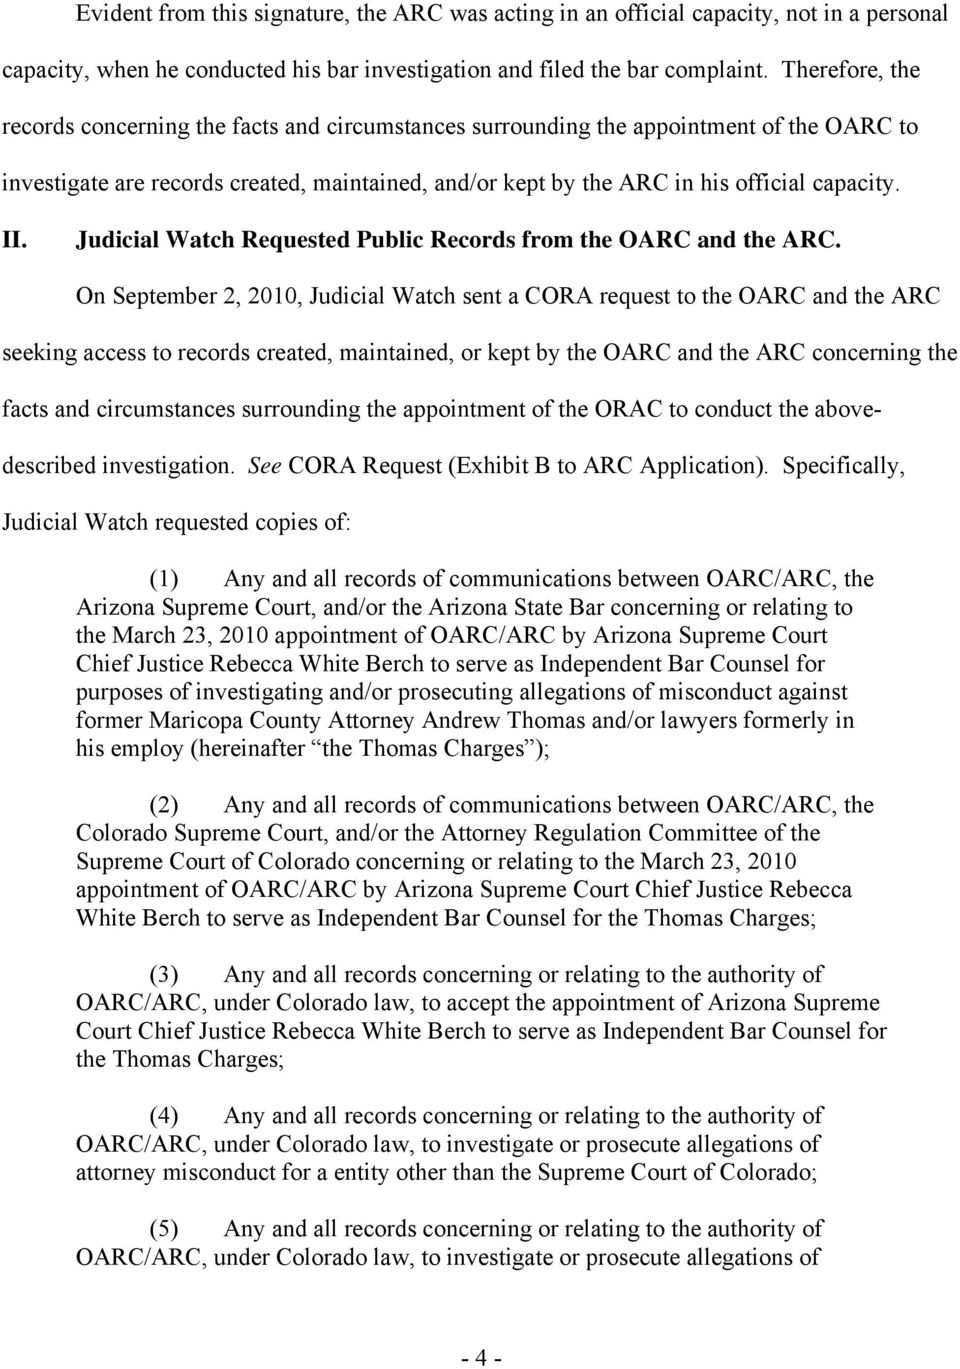 II. Judicial Watch Requested Public Records from the OARC and the ARC.